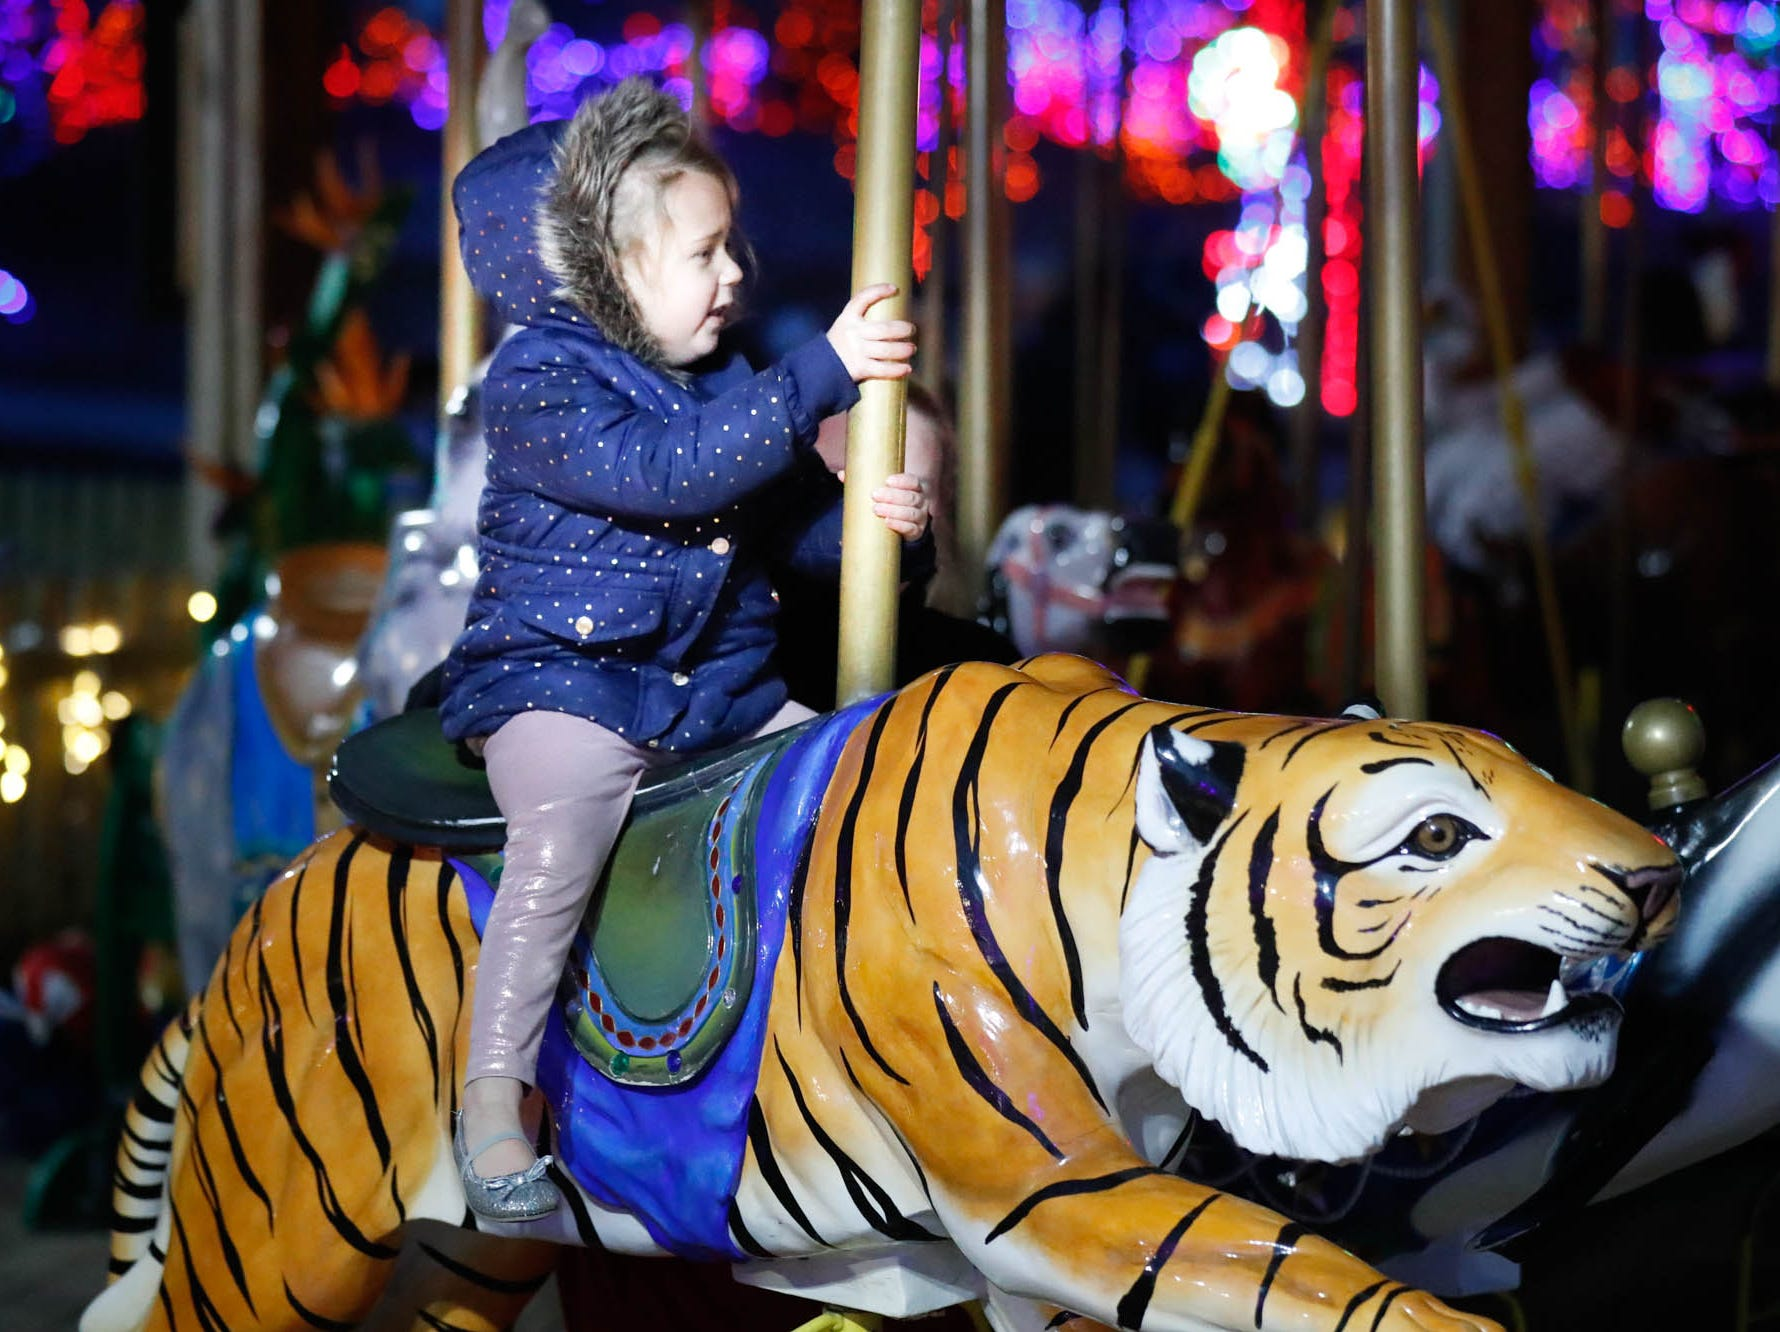 Zoey Miller, left, and Molly Collelo, right, ride the carosel  during Christmas at the Indianapolis Zoo on Wednesday, Dec. 19, 2018.